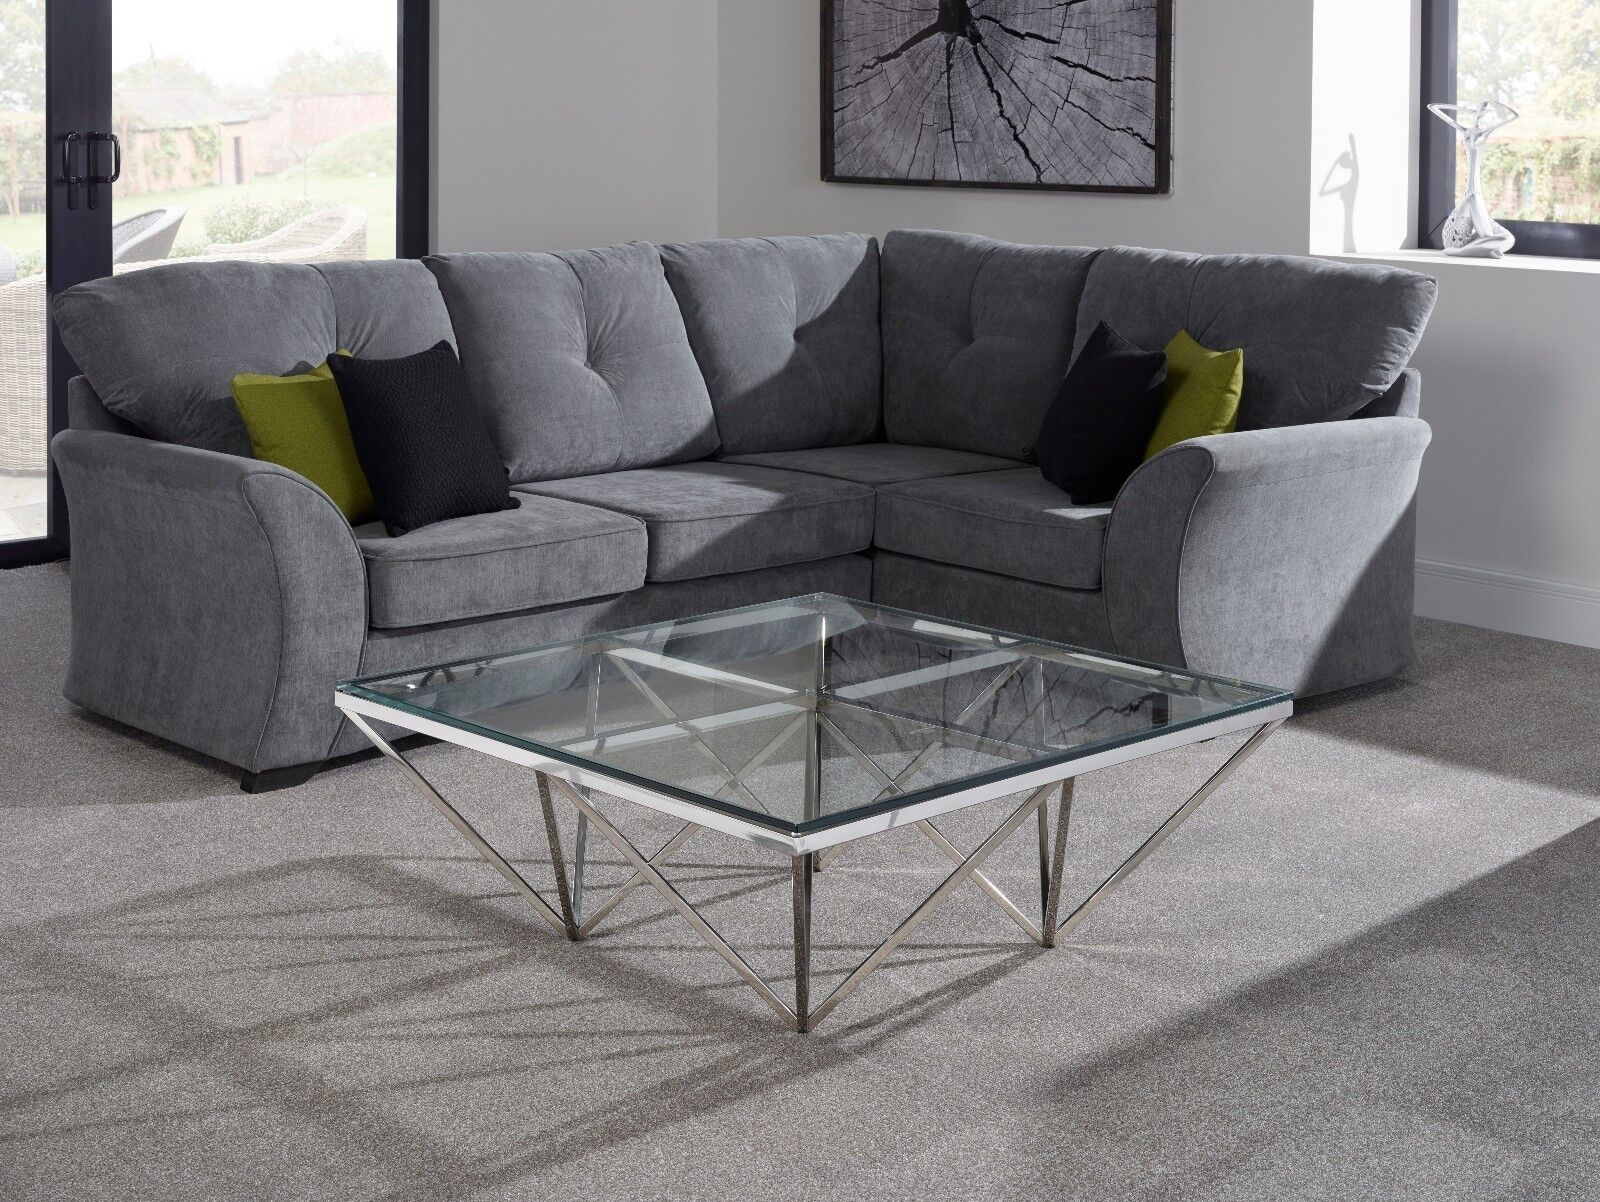 Giza Modern Square Glass Coffee Table In Stainless Steel Frame Star